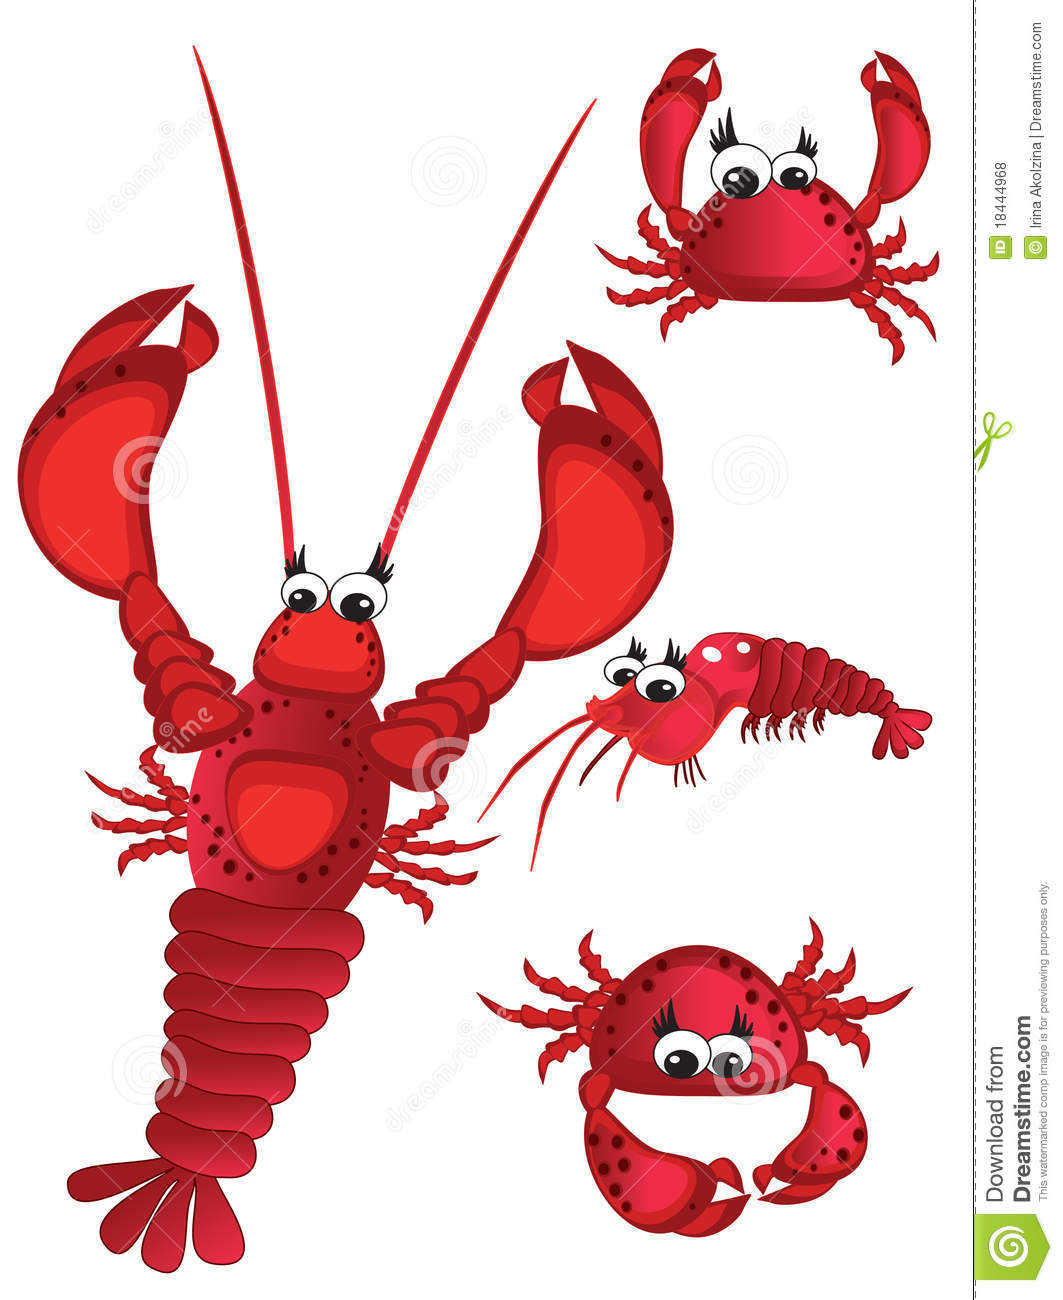 Shrimp,lobster and crabs stock vector. Image of animal - 18444968